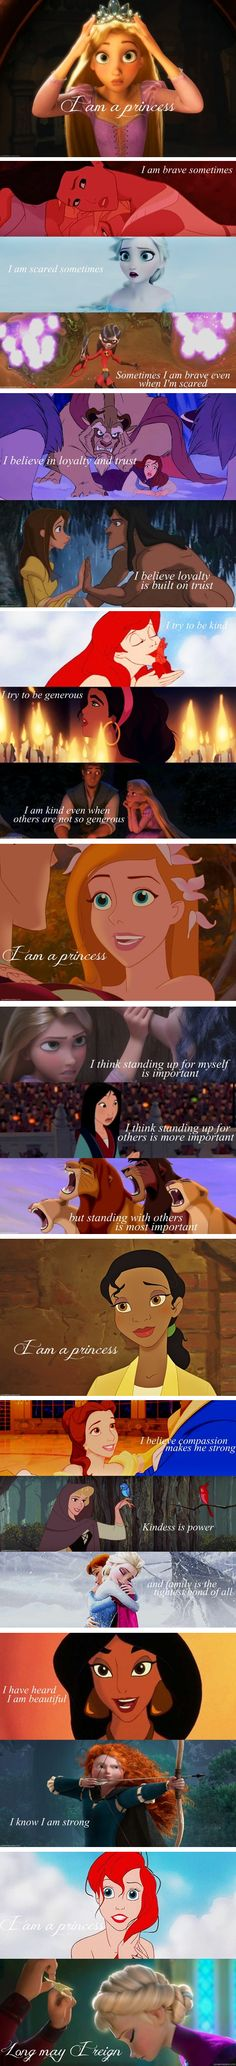 I am a princess...